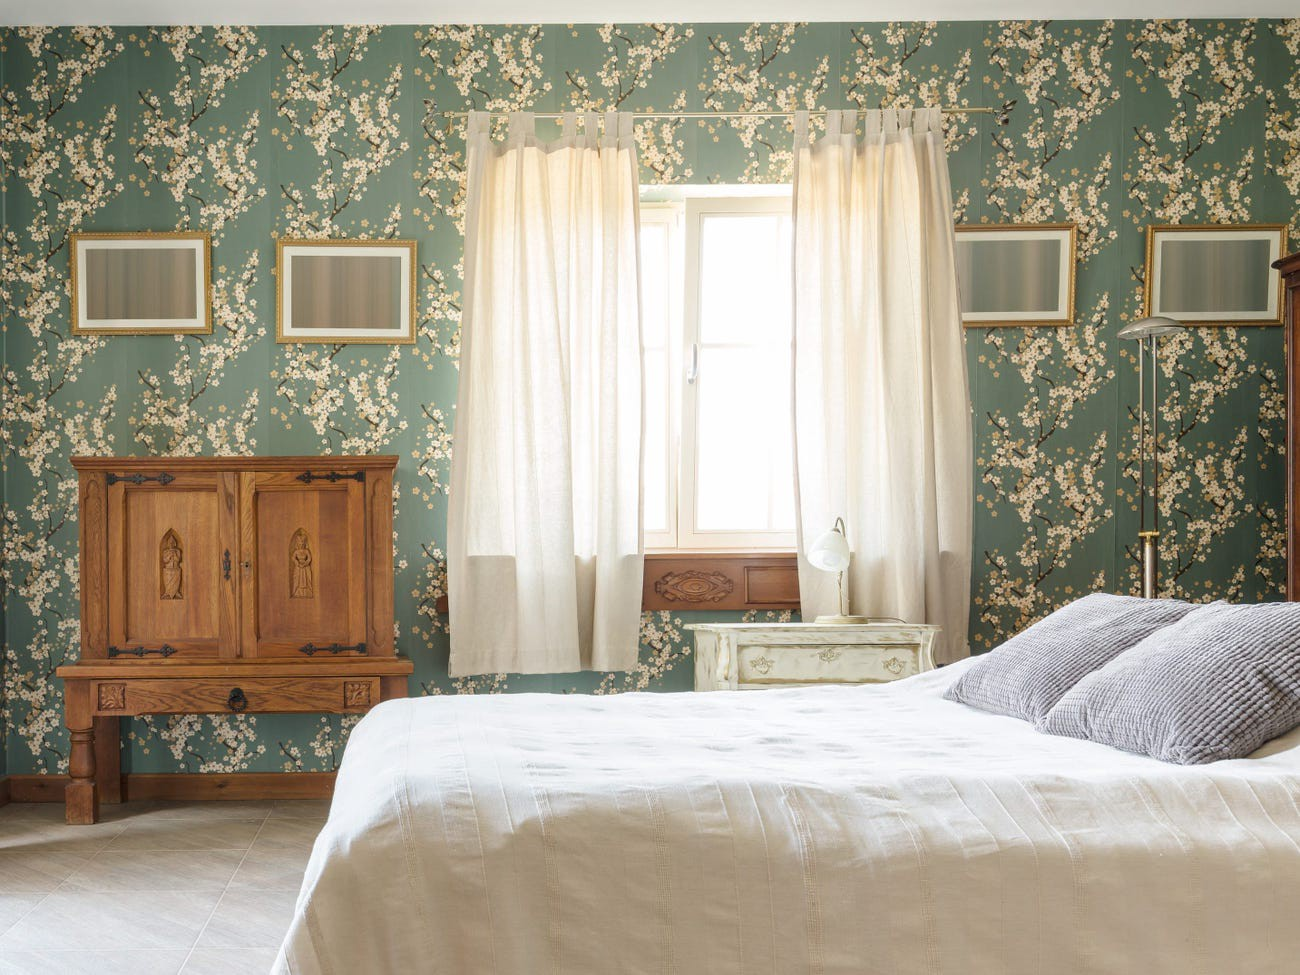 A bedroom with peel-and-stick wallpaper.